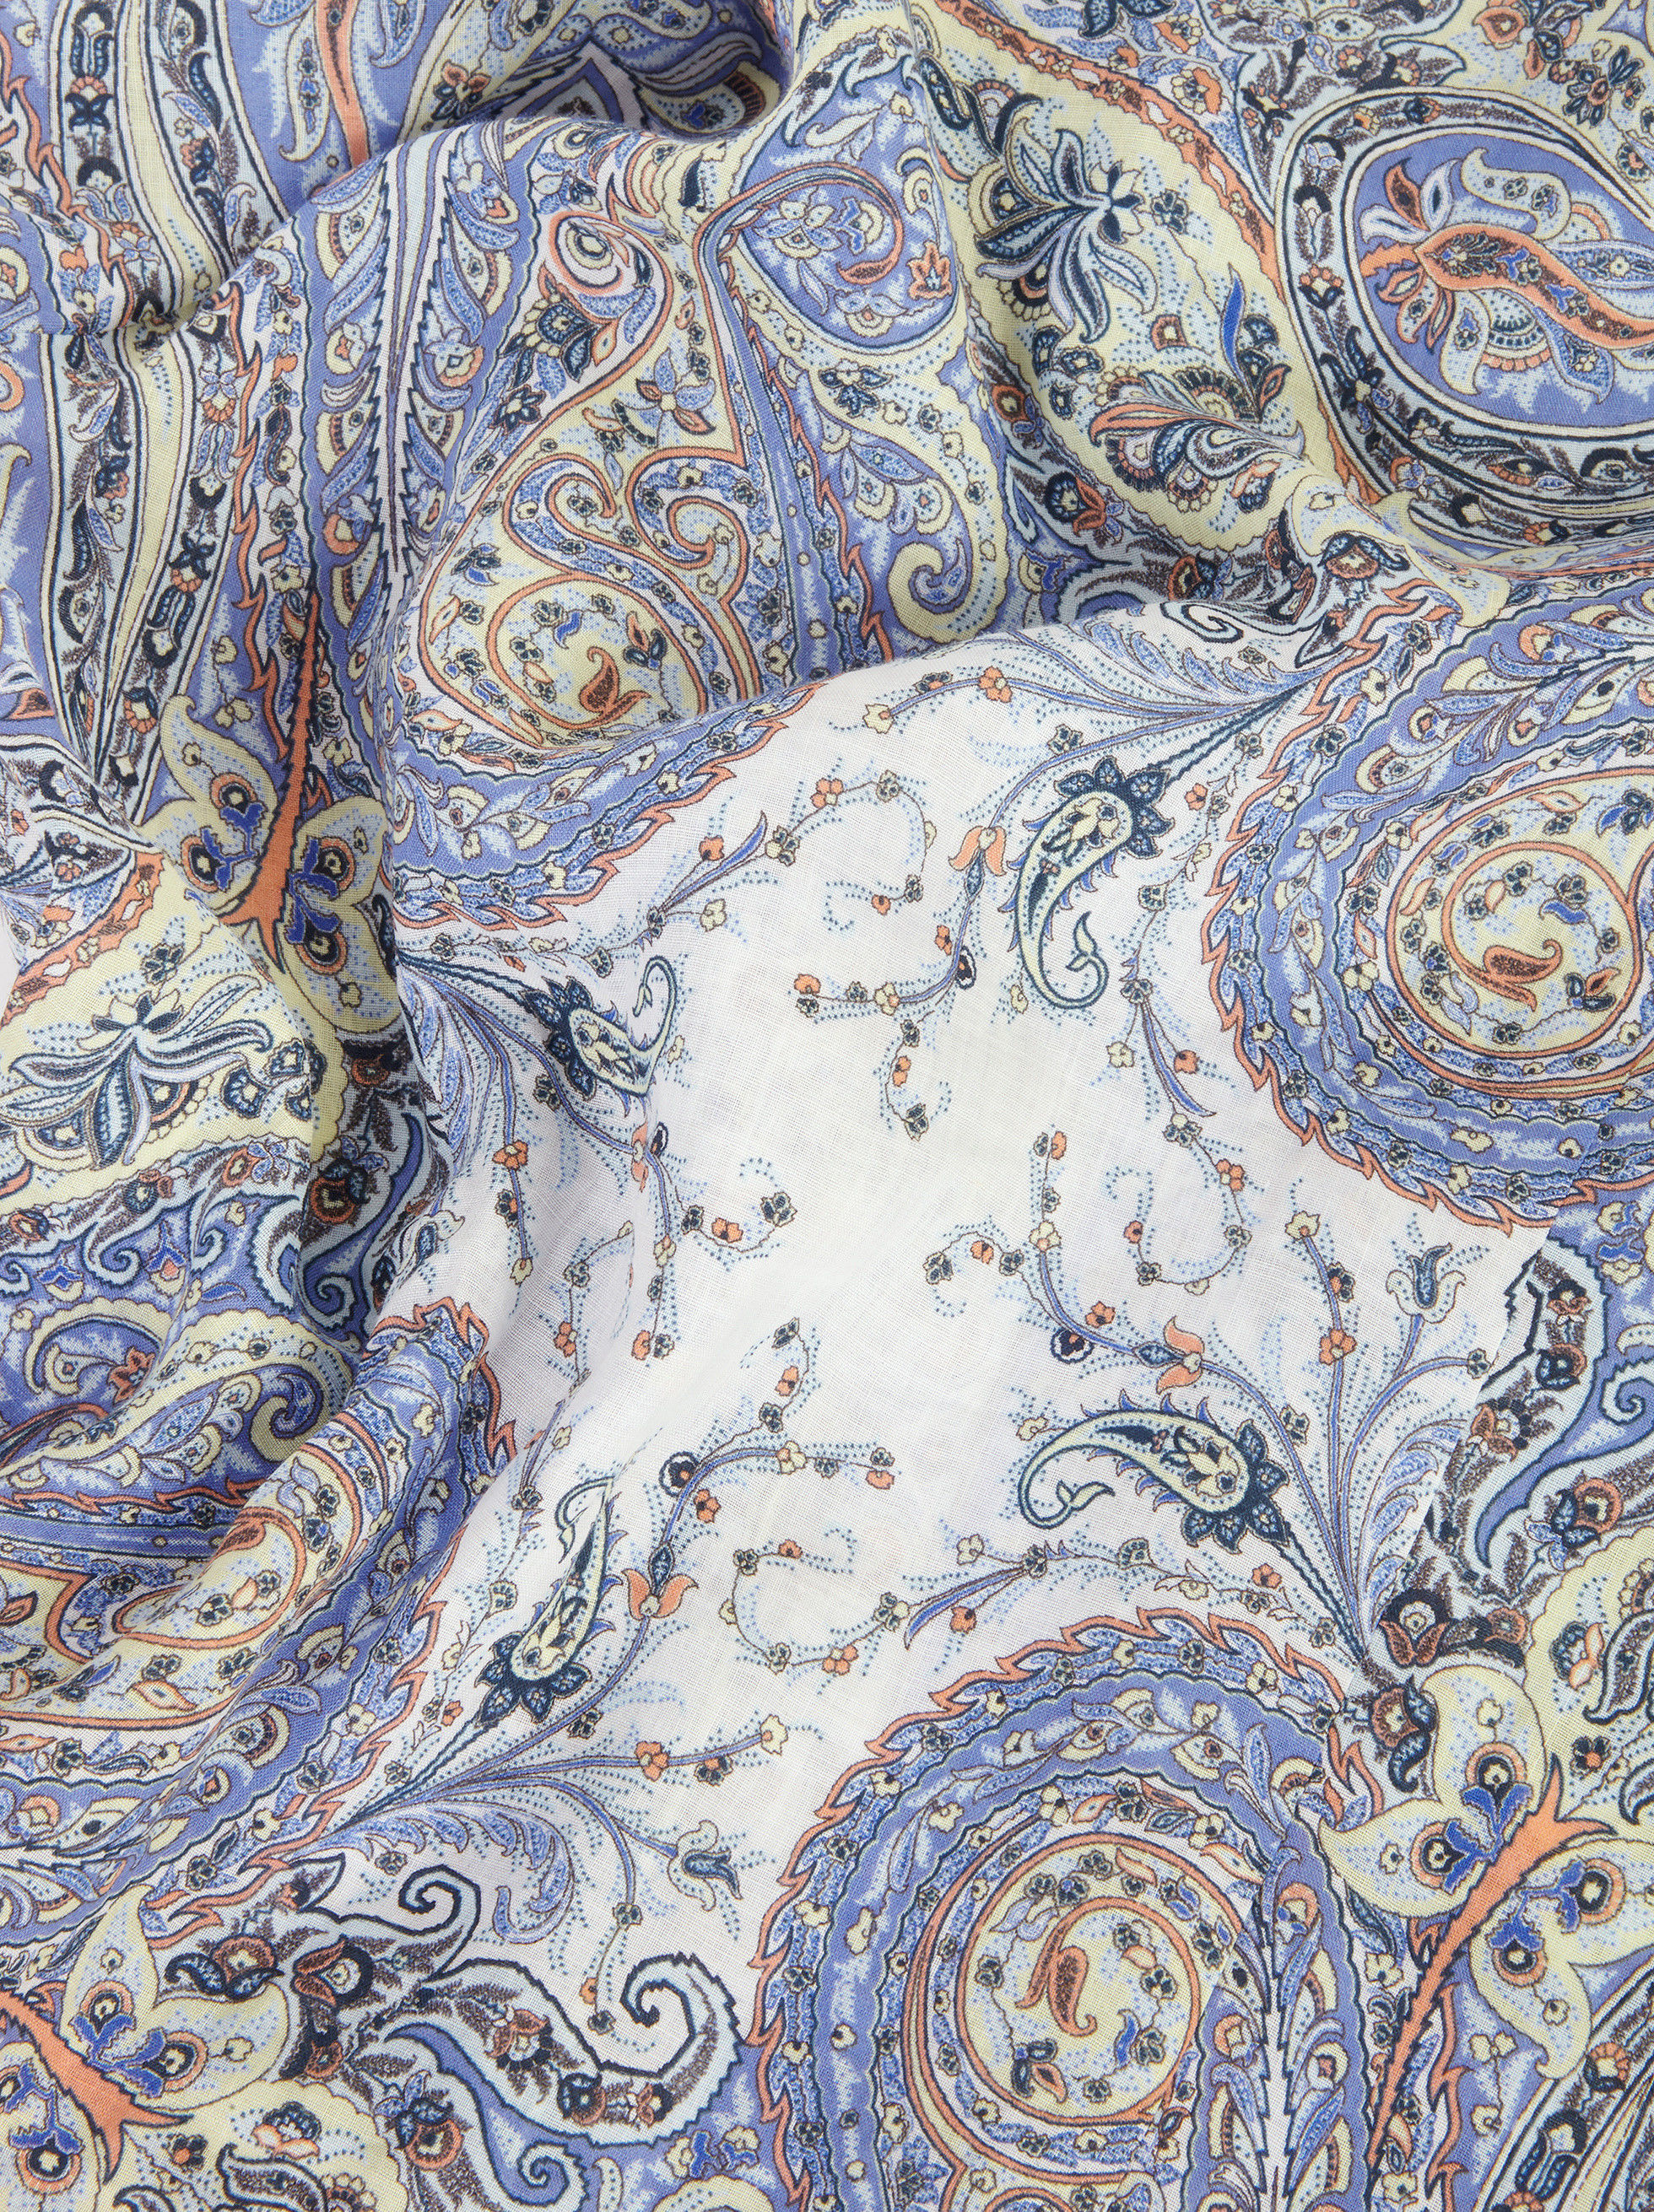 CAMISA PAISLEY FLORAL